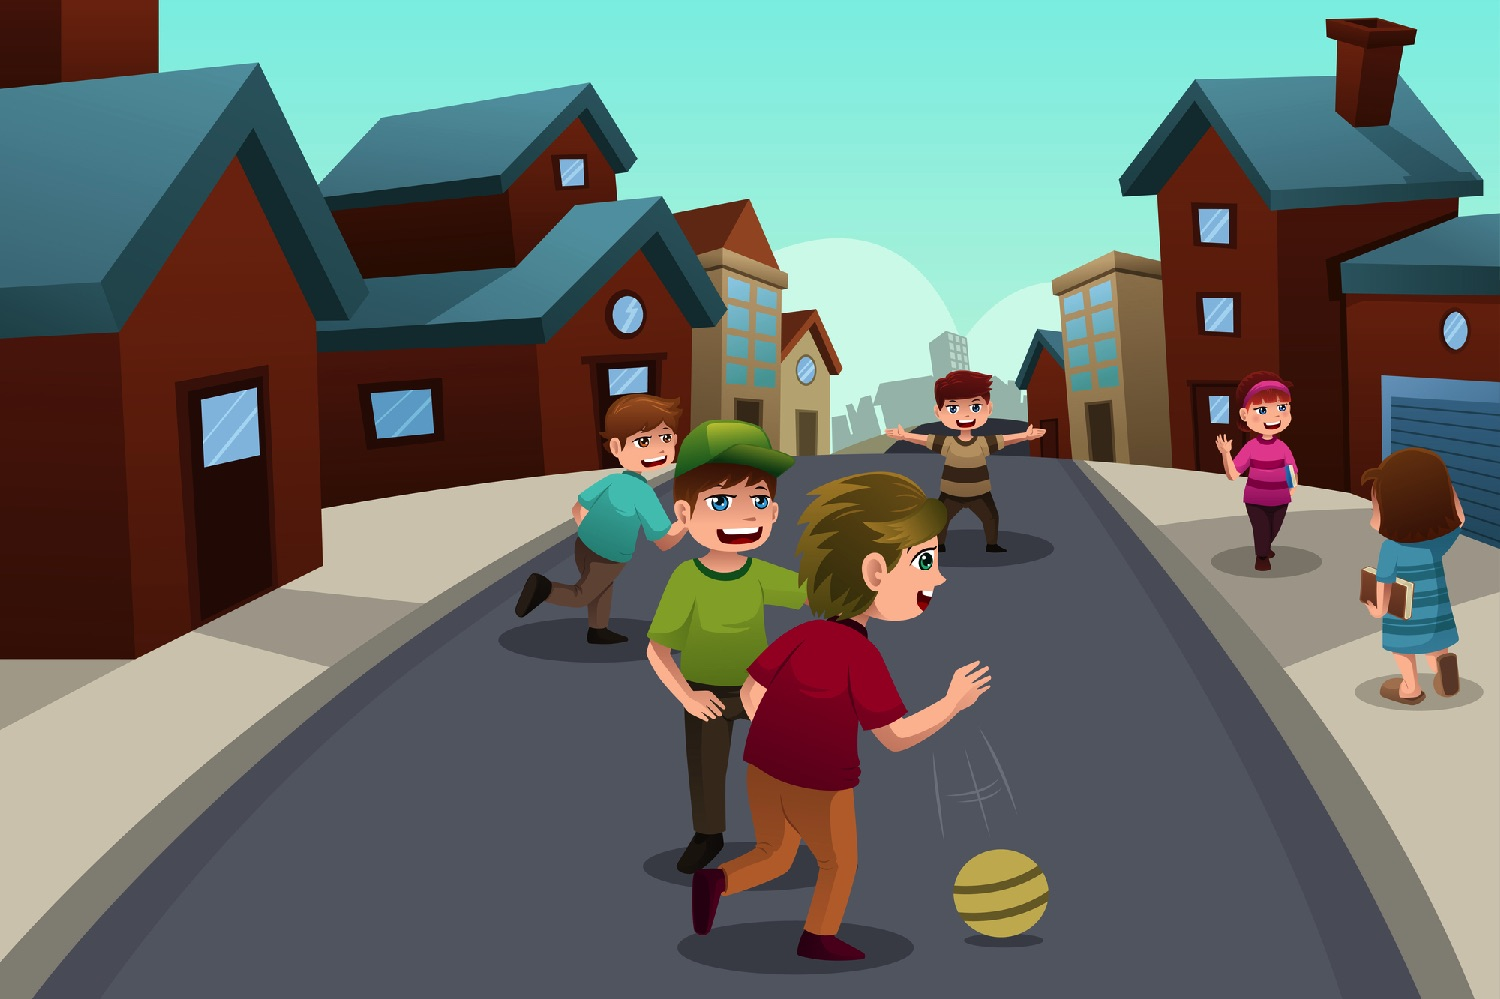 Watchout for children having fun on the streets during Covid-19